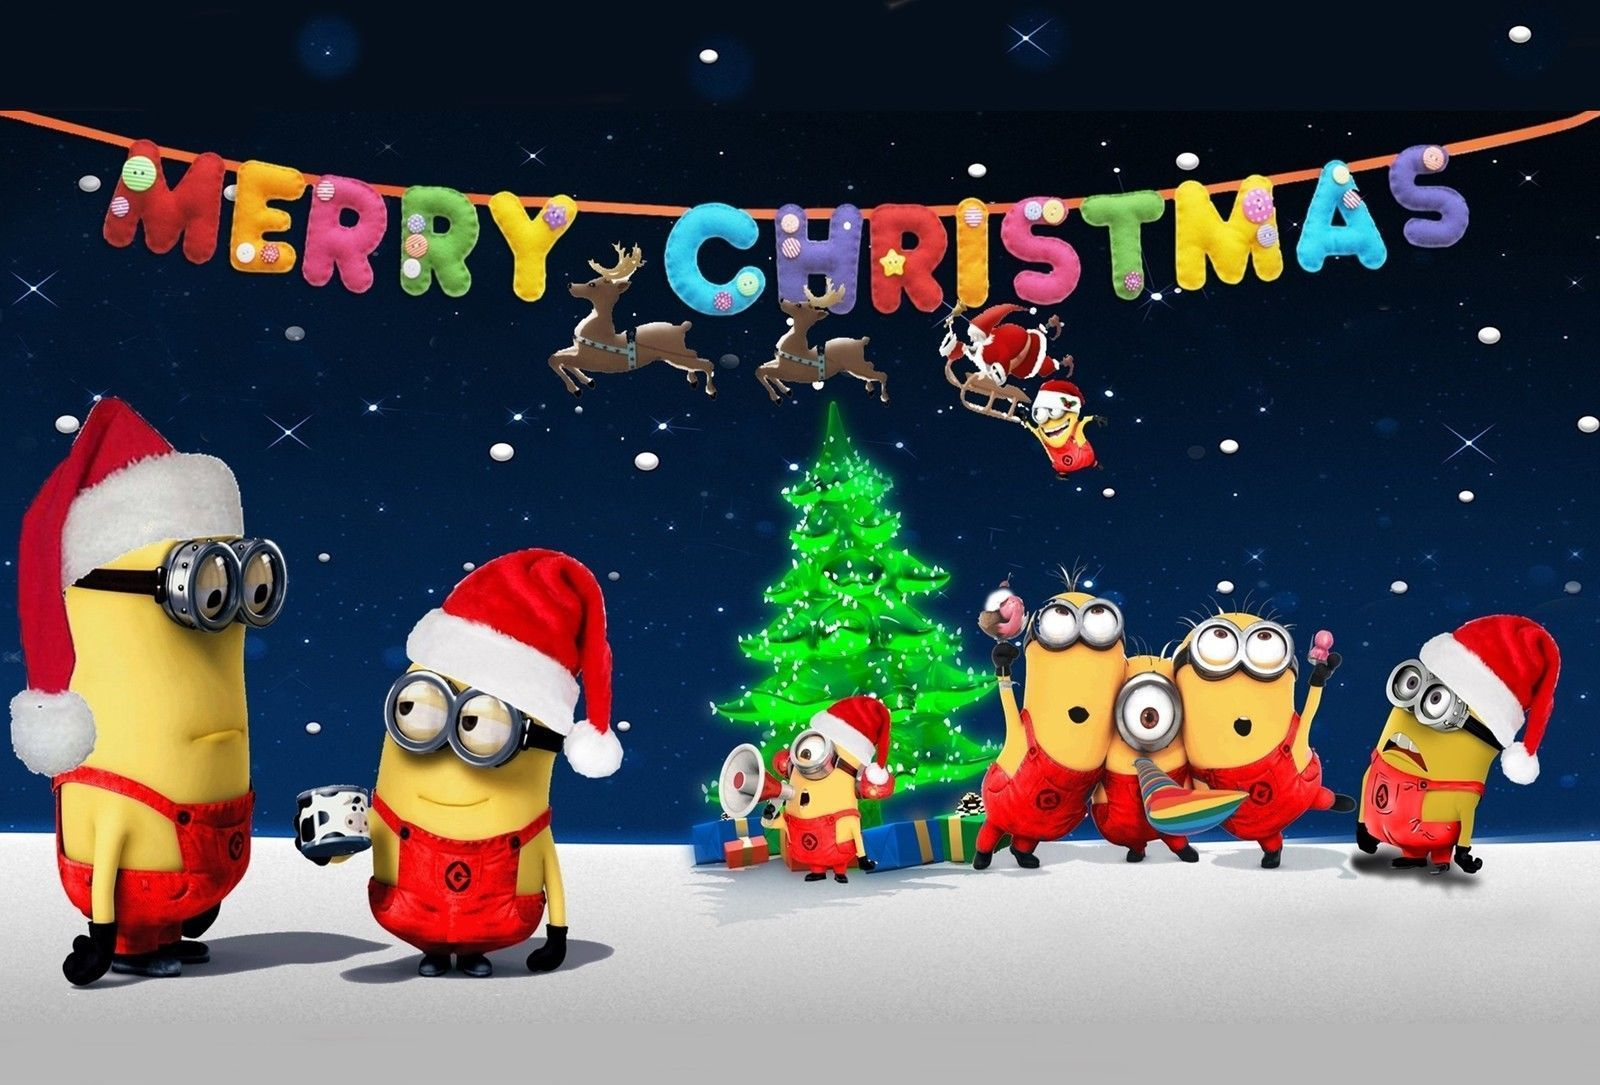 Minions Christmas Desktop Tablet Wallpaper With Images Minion